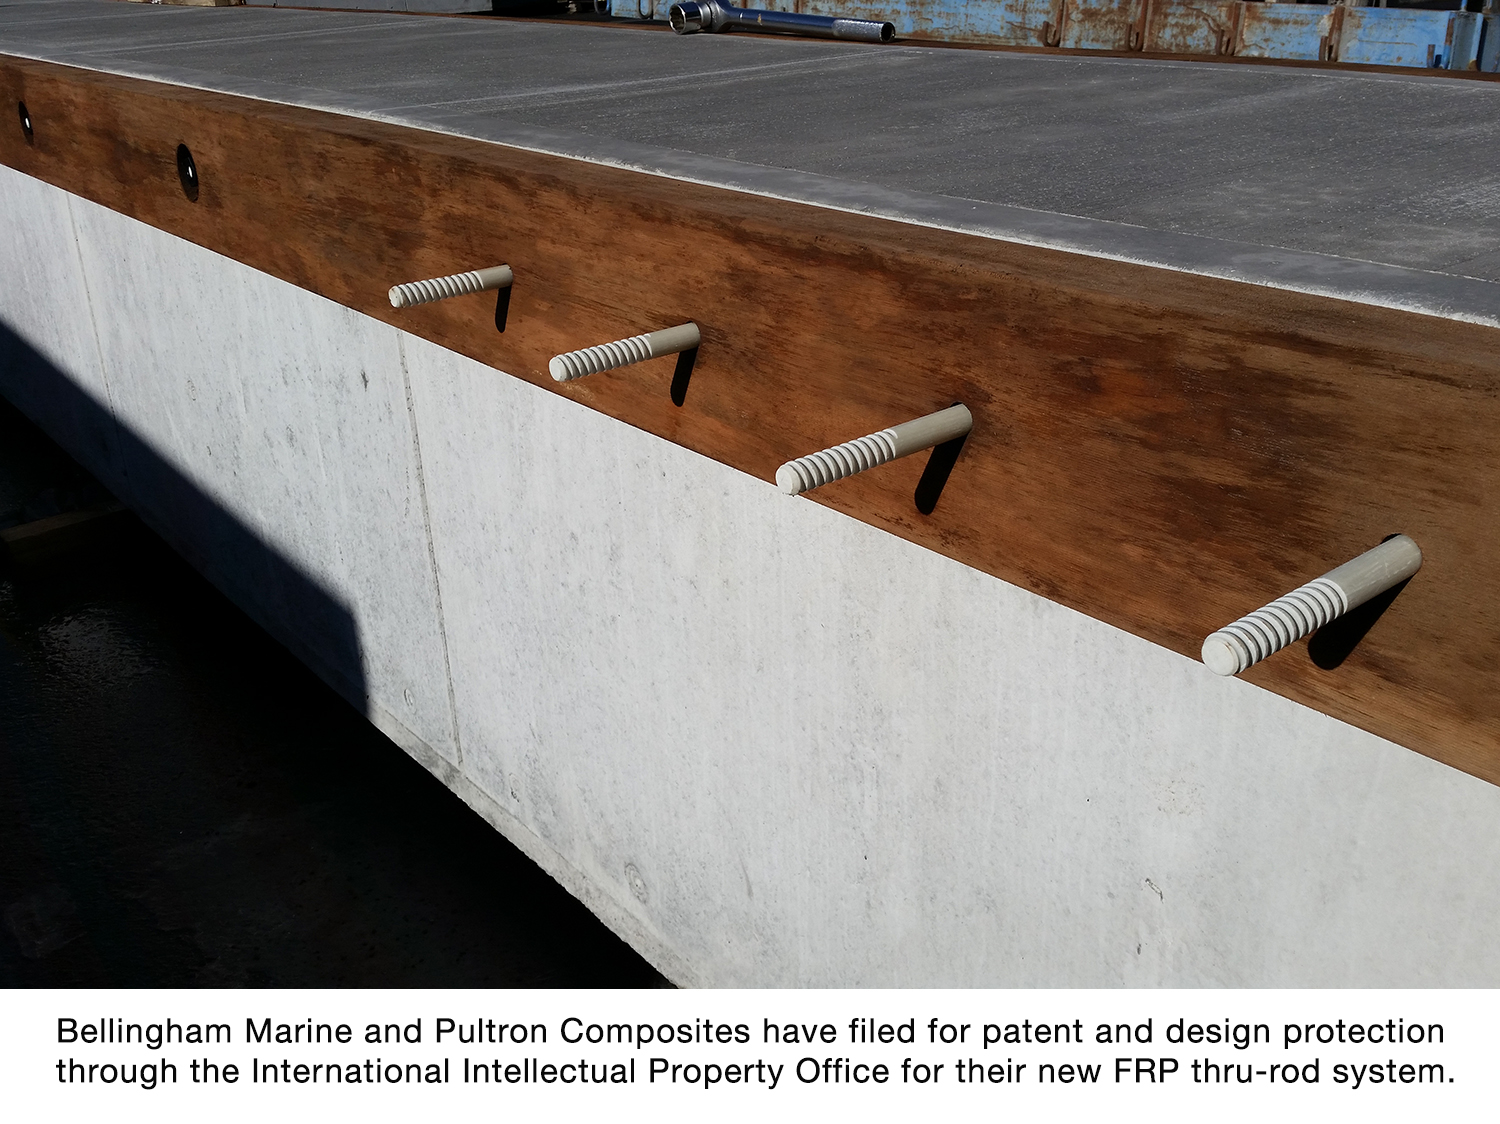 Bellingham Marine announces patent pending status of FRP thru-rods